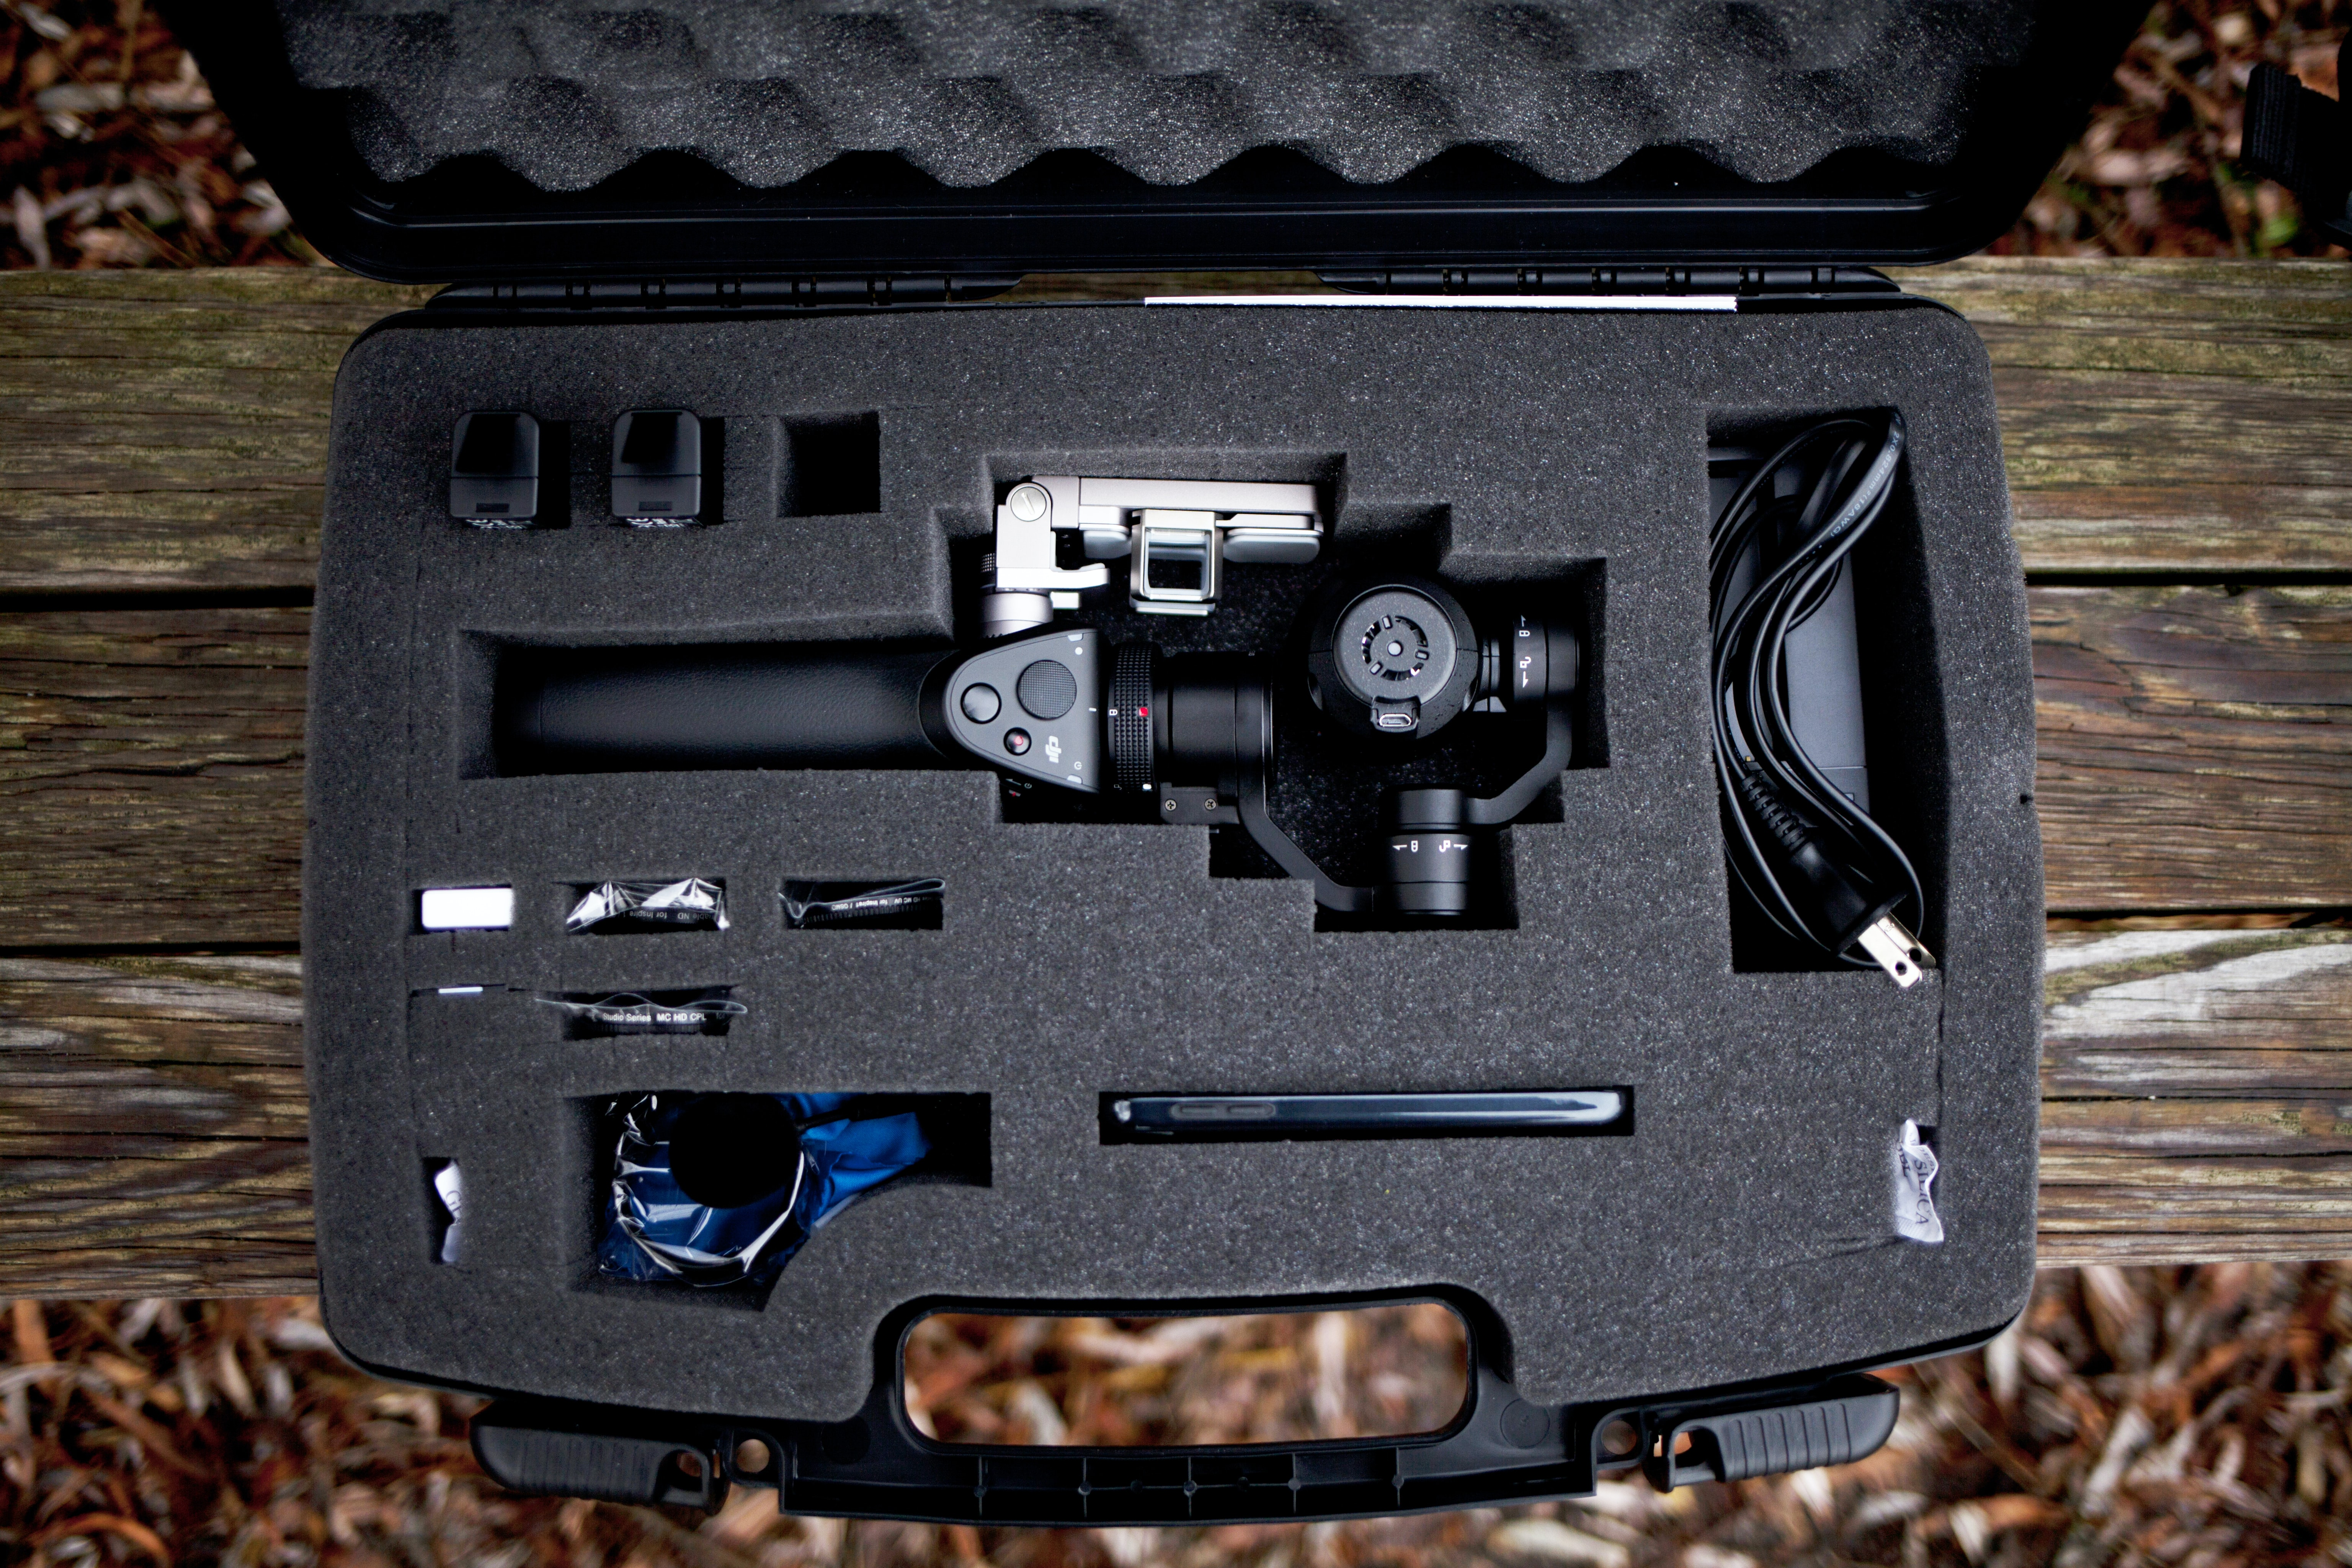 flat-lay photo of camera stabilizer